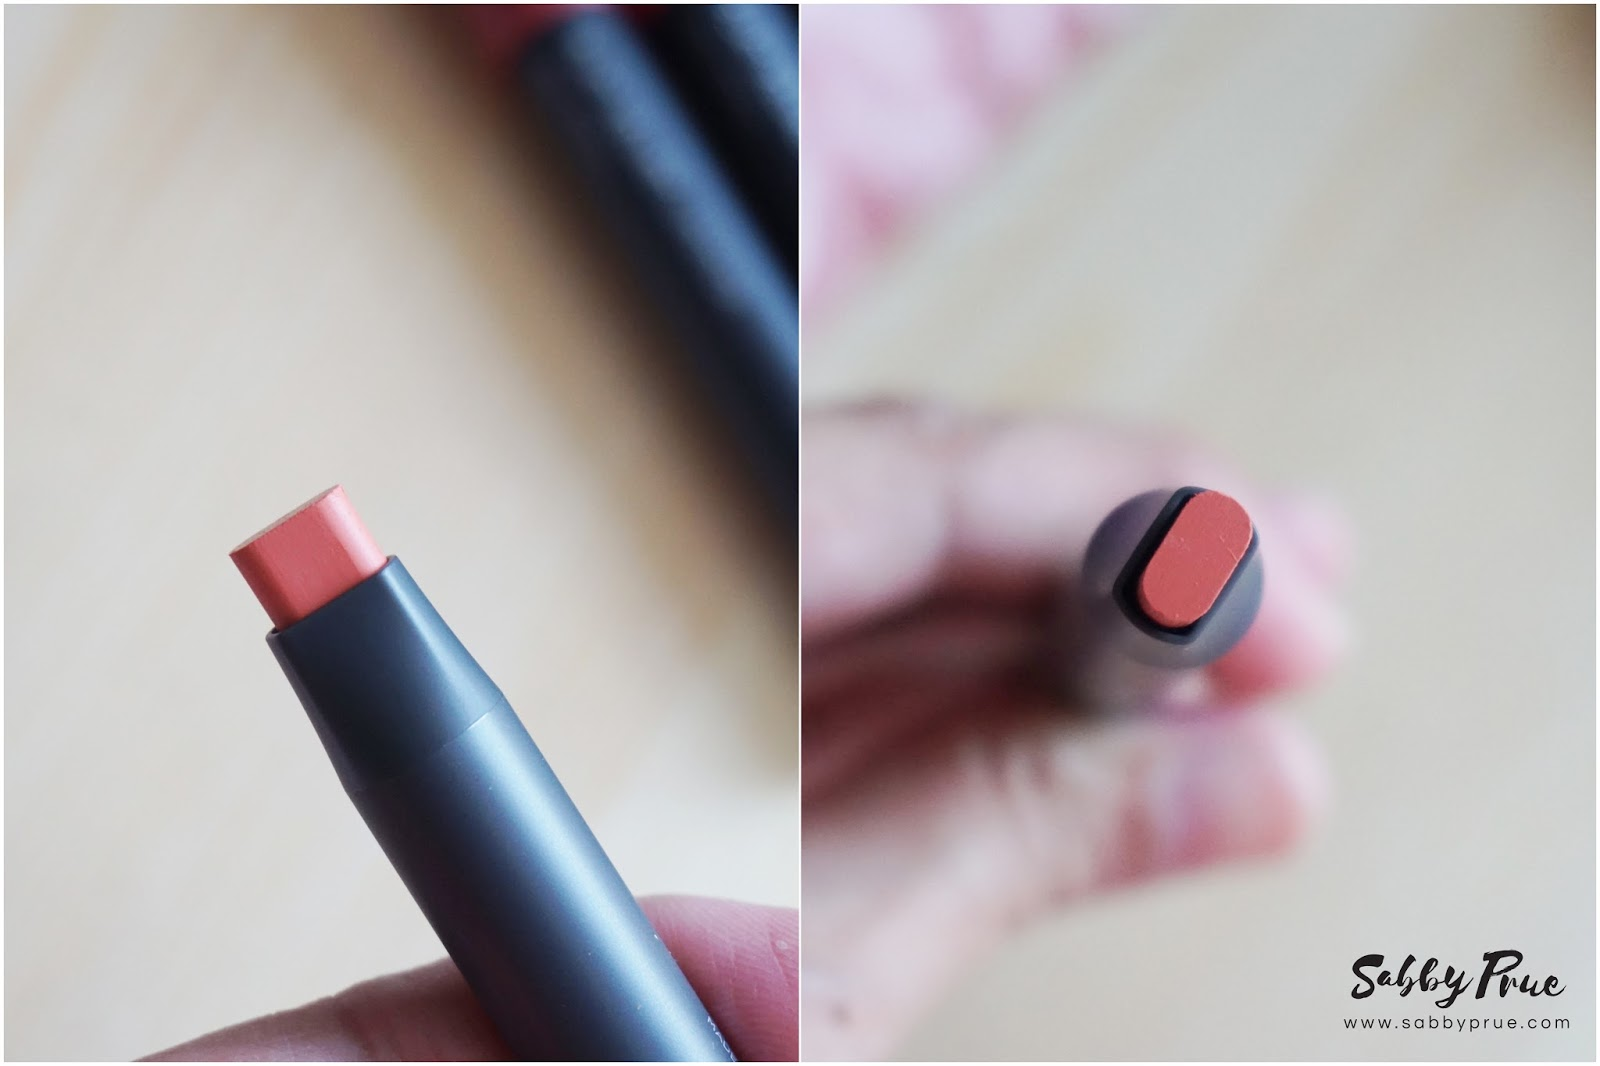 The face shop flat velvet glossy lipstick review sabby prue the face shop flat velvet glossy lipstick comes in a retractable pencil type packaging that is super convenient to use and to travel with due to the small publicscrutiny Images